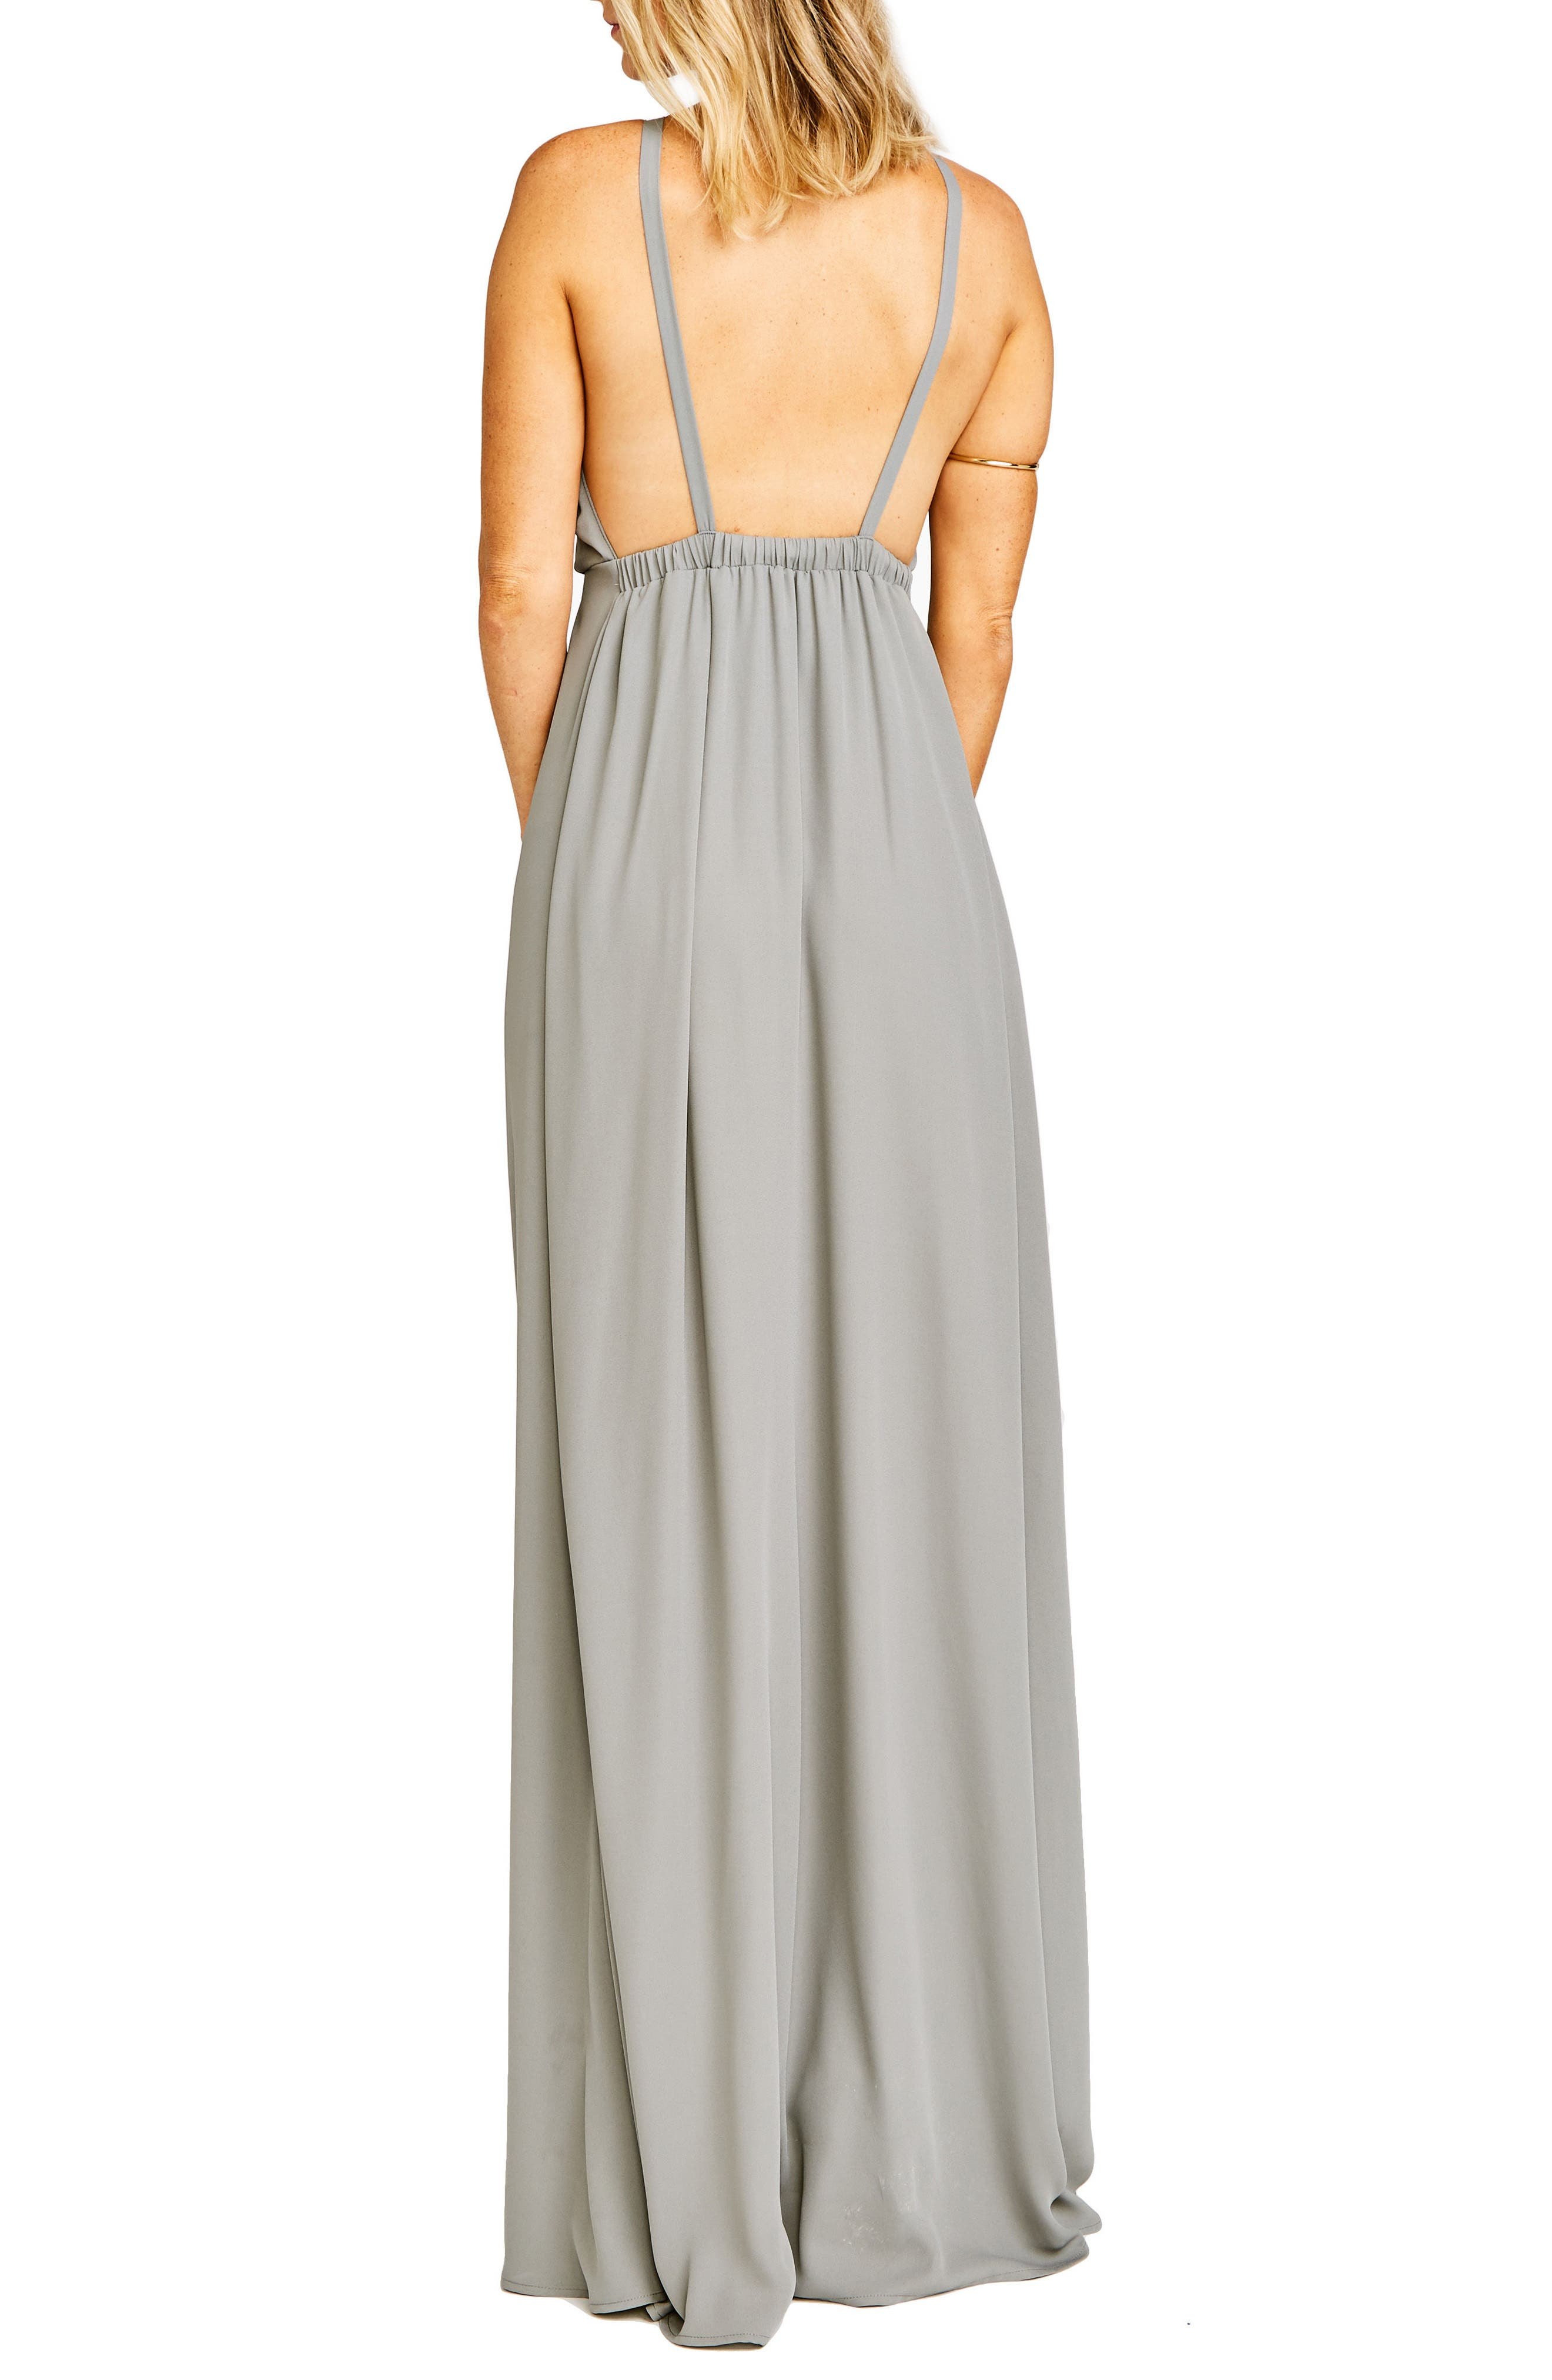 Amanda Open Back Blouson Gown,                             Alternate thumbnail 14, color,